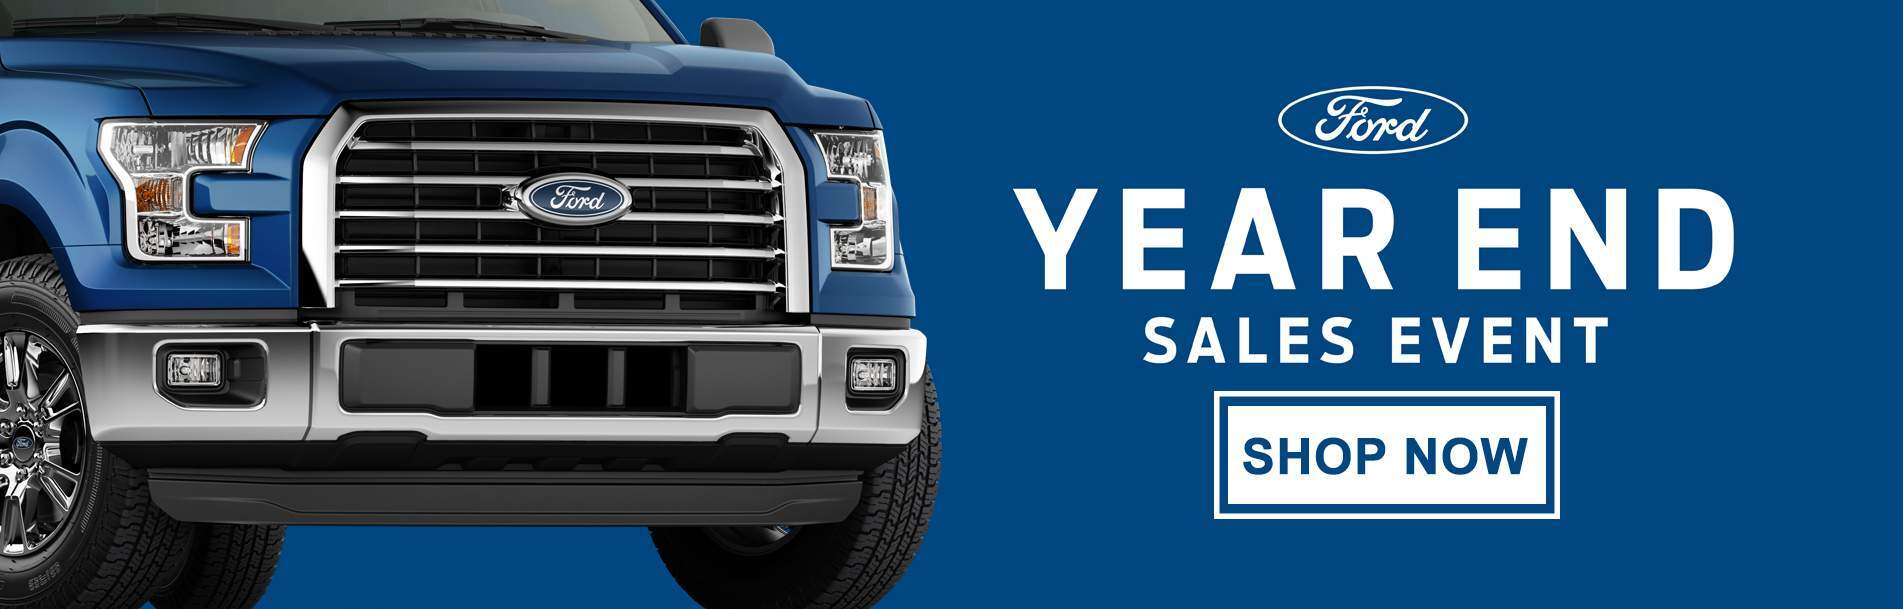 Ford Year End Sales Event at Rochester Ford